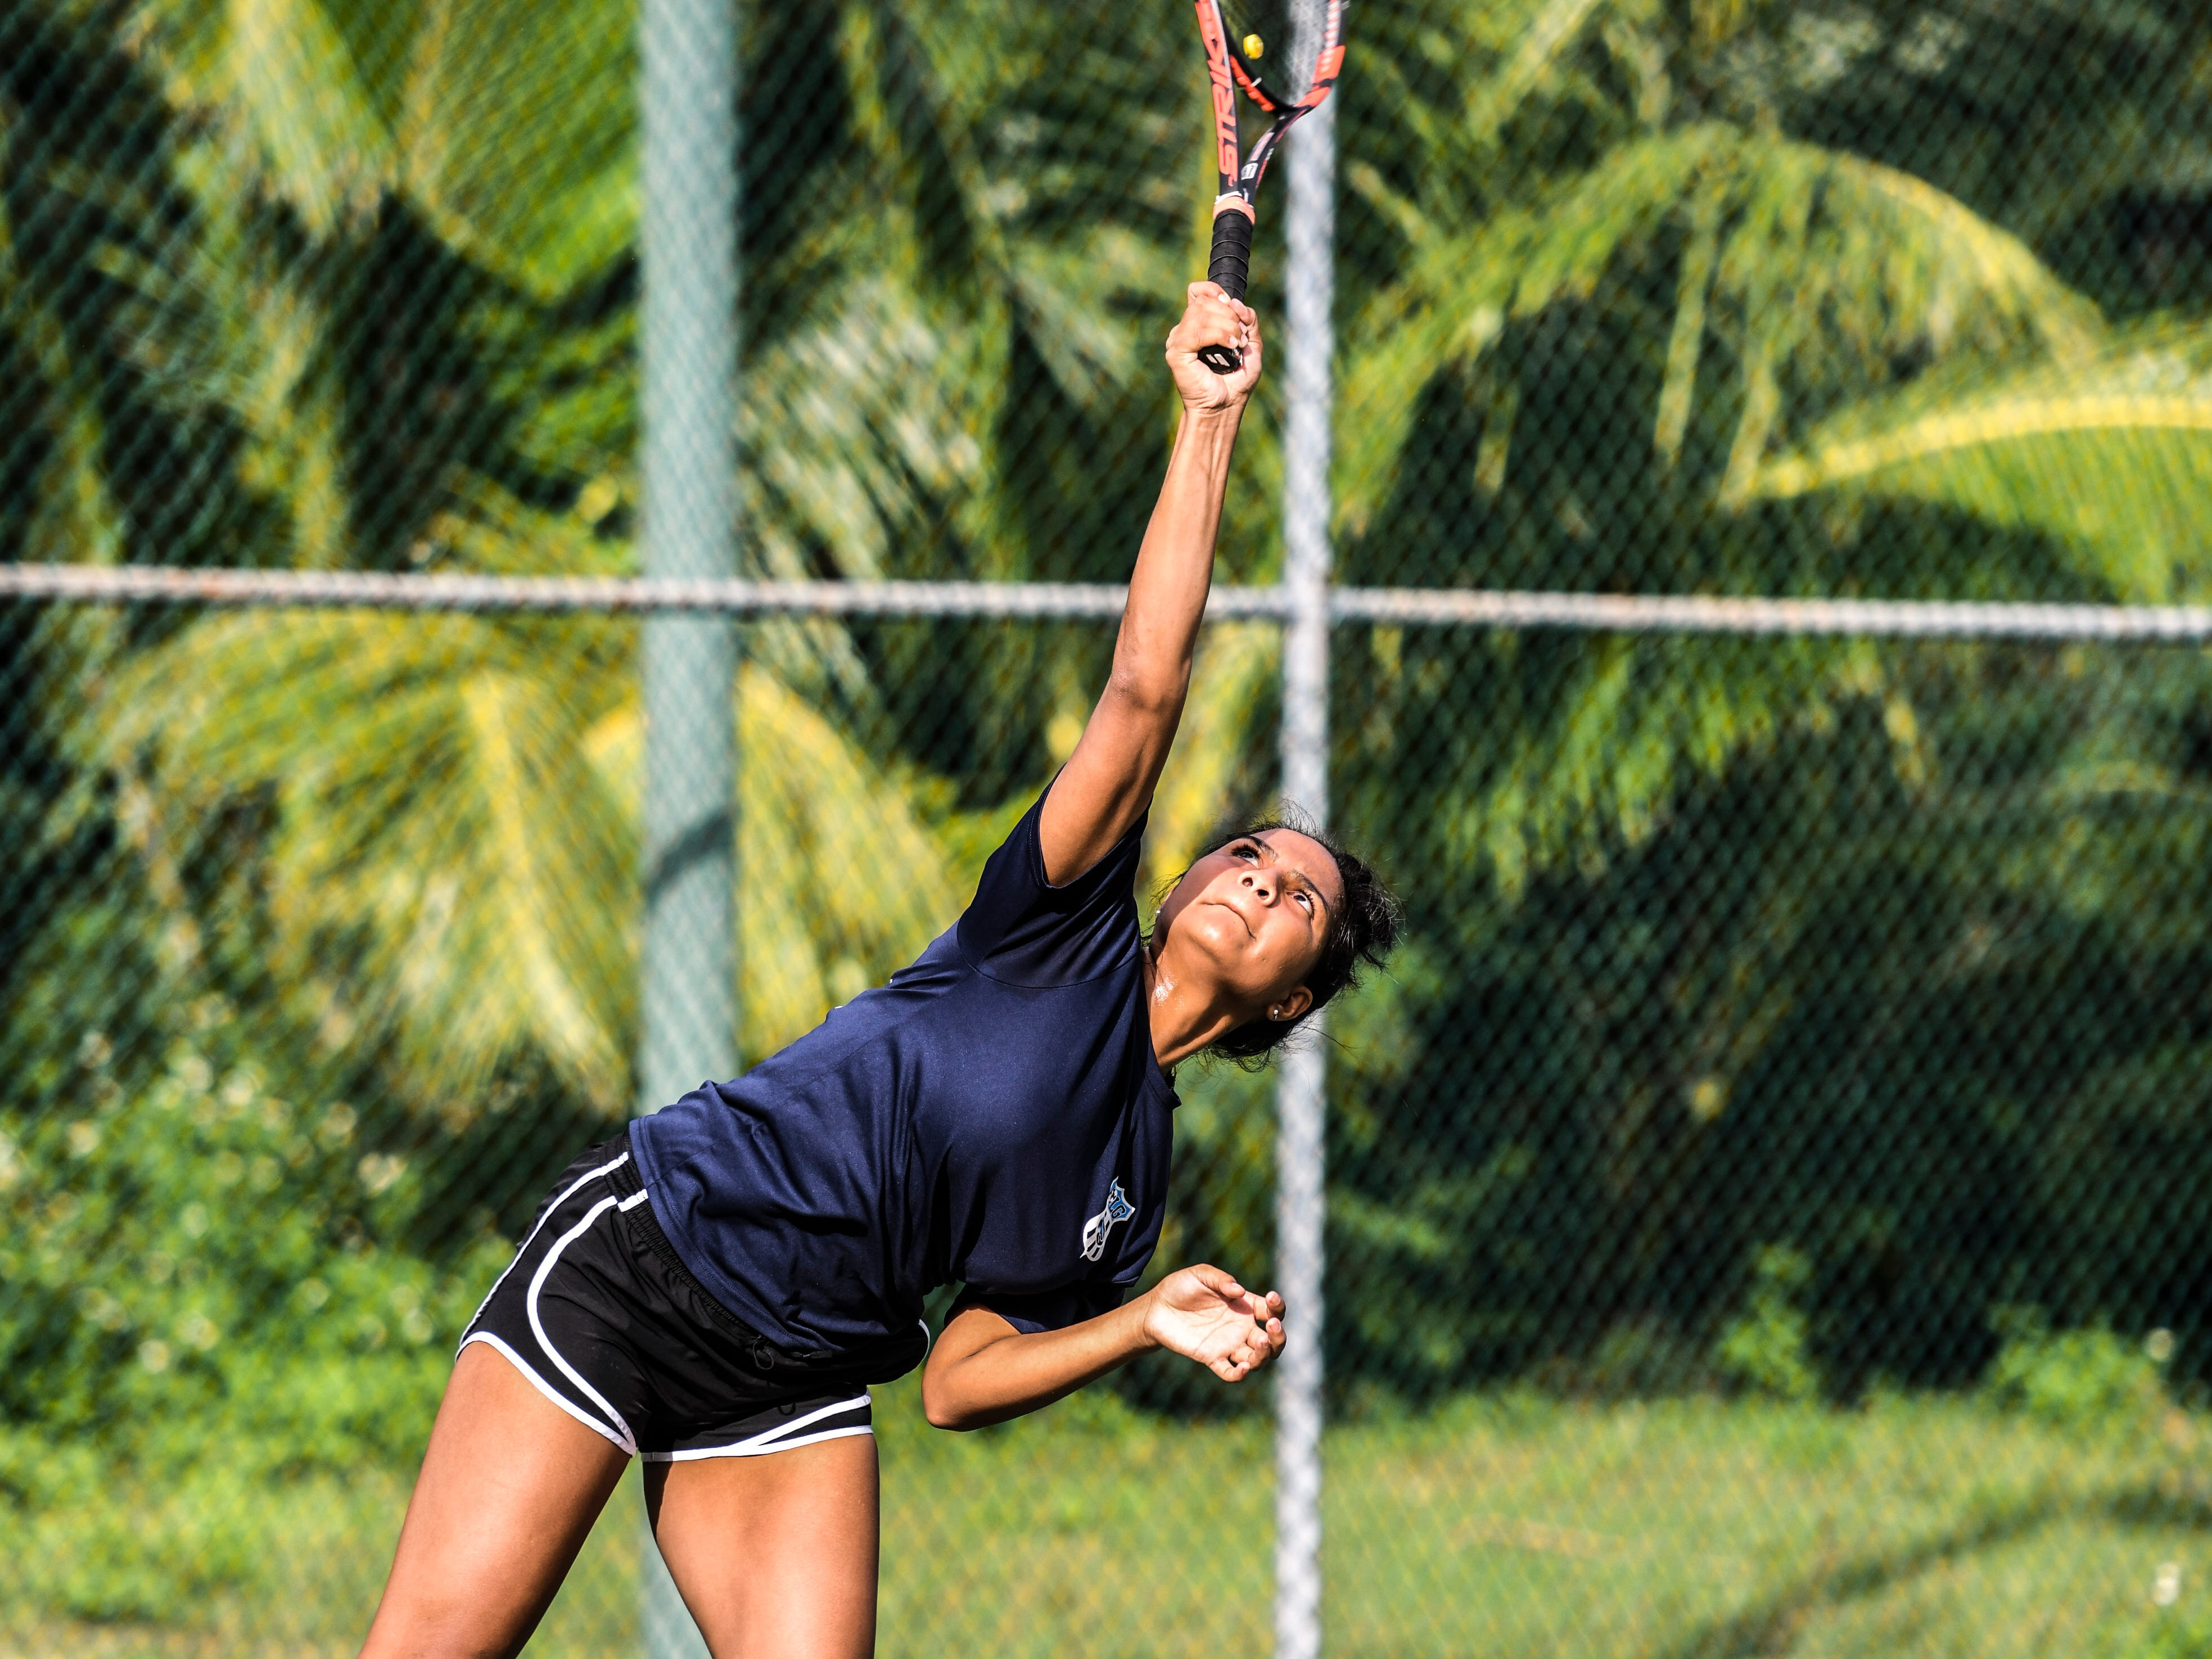 Academy of Our Lady Guam Cougars' Jocelyn Tenai asserts power behind a serve during an Interscholastic Athletic Association of Guam tennis singles match with St. John's Knights' Anika Sachdev at the Rick Ninete Tennis Center in Hagåtna on Thursday, Jan. 31, 2019.